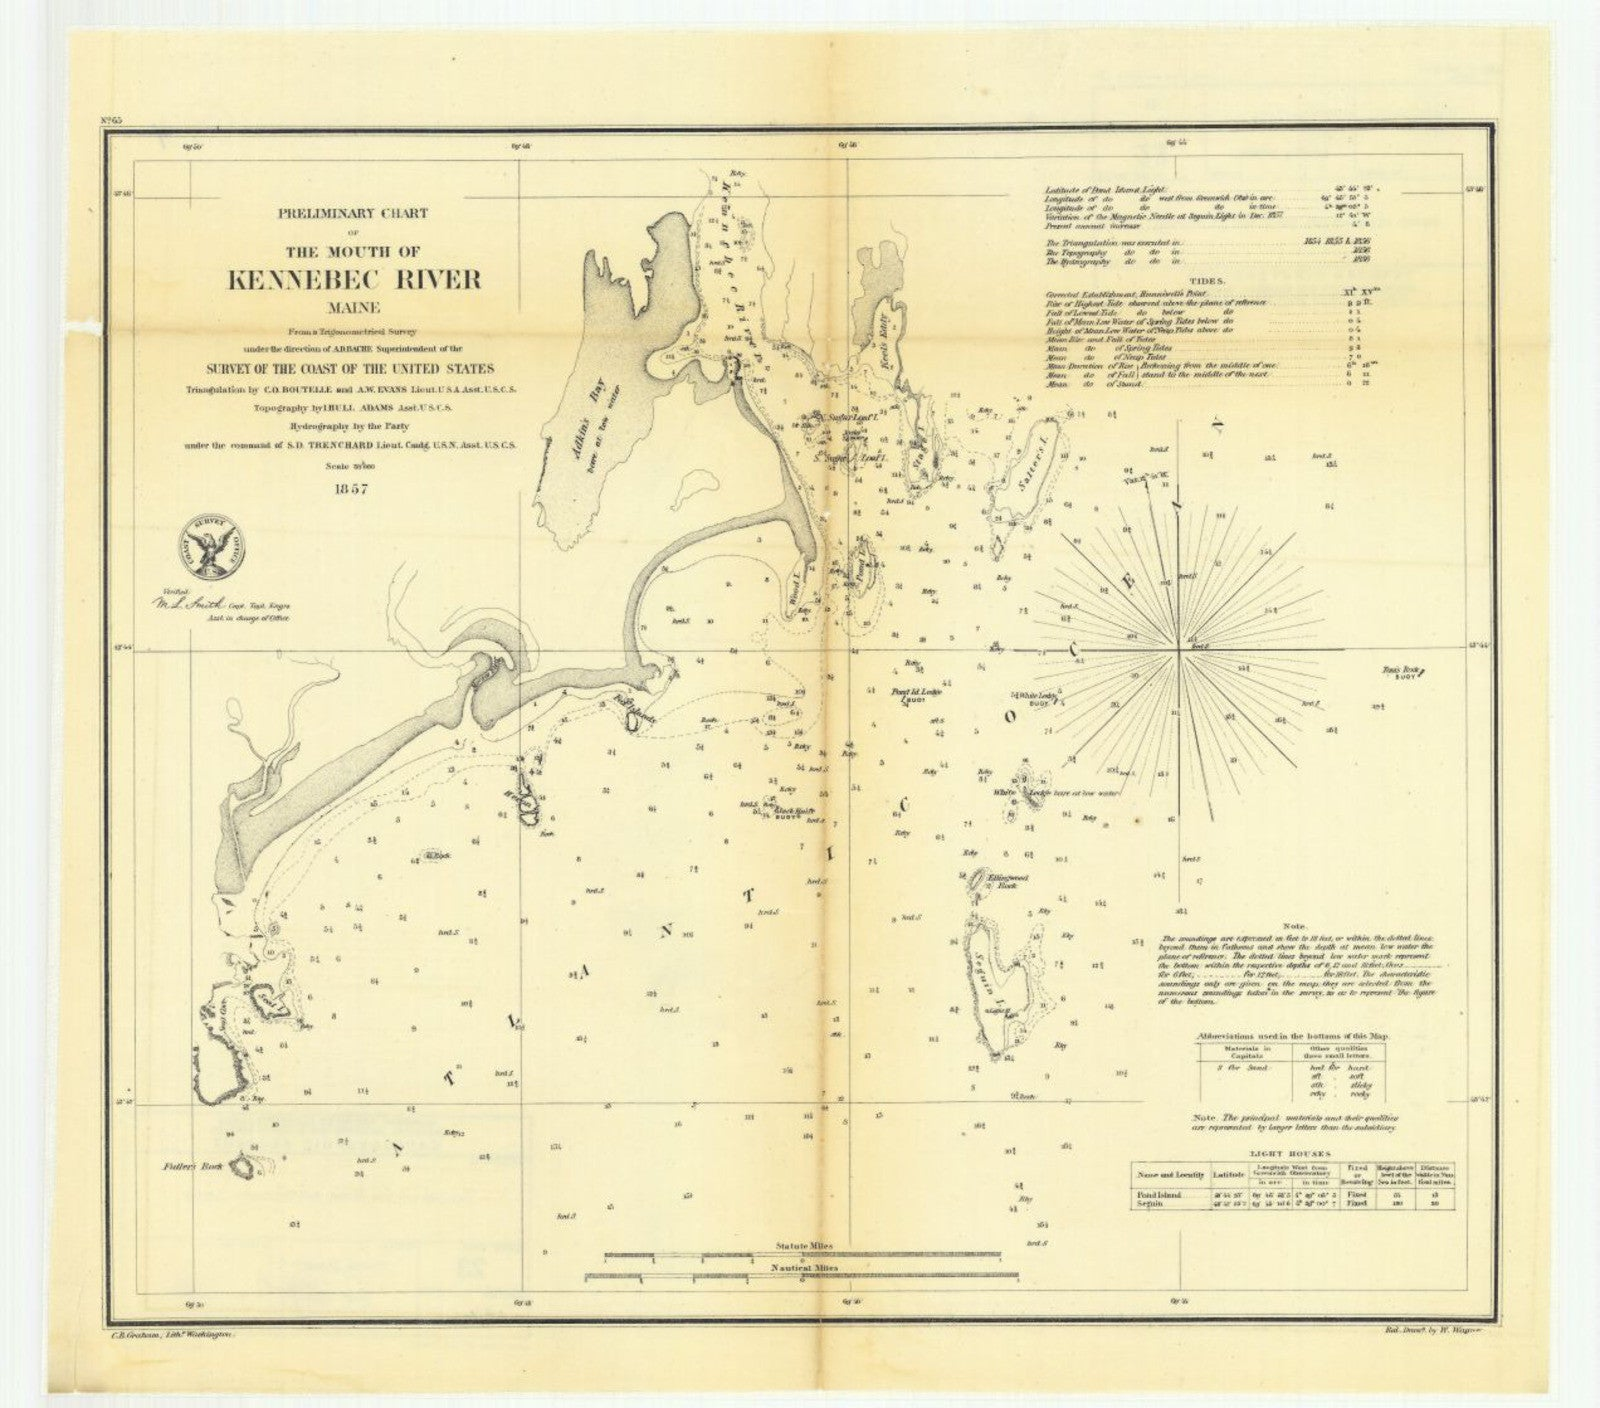 Preliminary Chart Of The Mouth Of Kennebec River, Maine Print on northeast us rivers map, paris rivers map, atlanta rivers map, minnesota rivers map, washinton rivers map, maine bordering states, columbia rivers map, madison rivers map, rhode island rivers map, maine rivers and streams, maryland rivers map, washington rivers map, ontario rivers map, europe rivers map, allagash river map, florida rivers map, michigan rivers map, new york rivers map, vermont rivers map, midwest region rivers map,